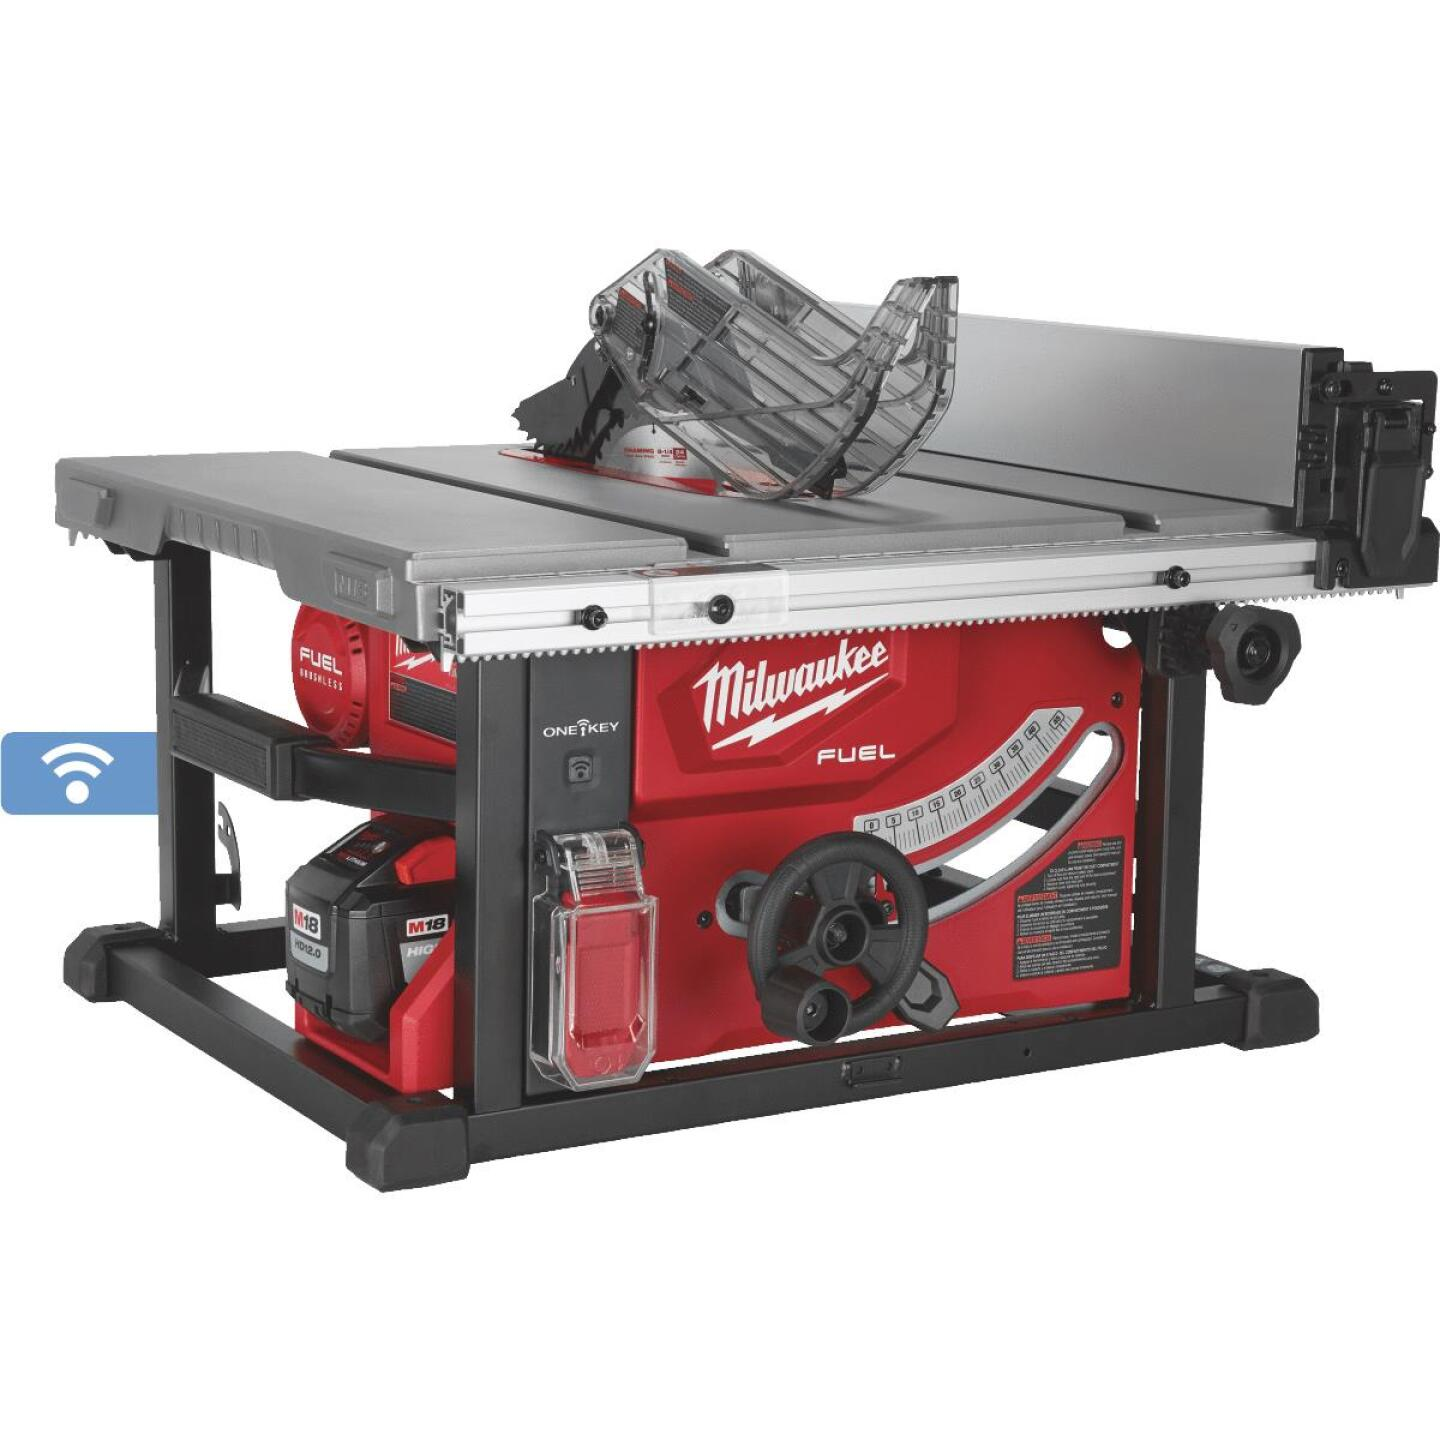 Milwaukee M18 FUEL 18-Volt Lithium-Ion Brushless 8-1/4 In. Cordless Table Saw w/One-Key Kit Image 1